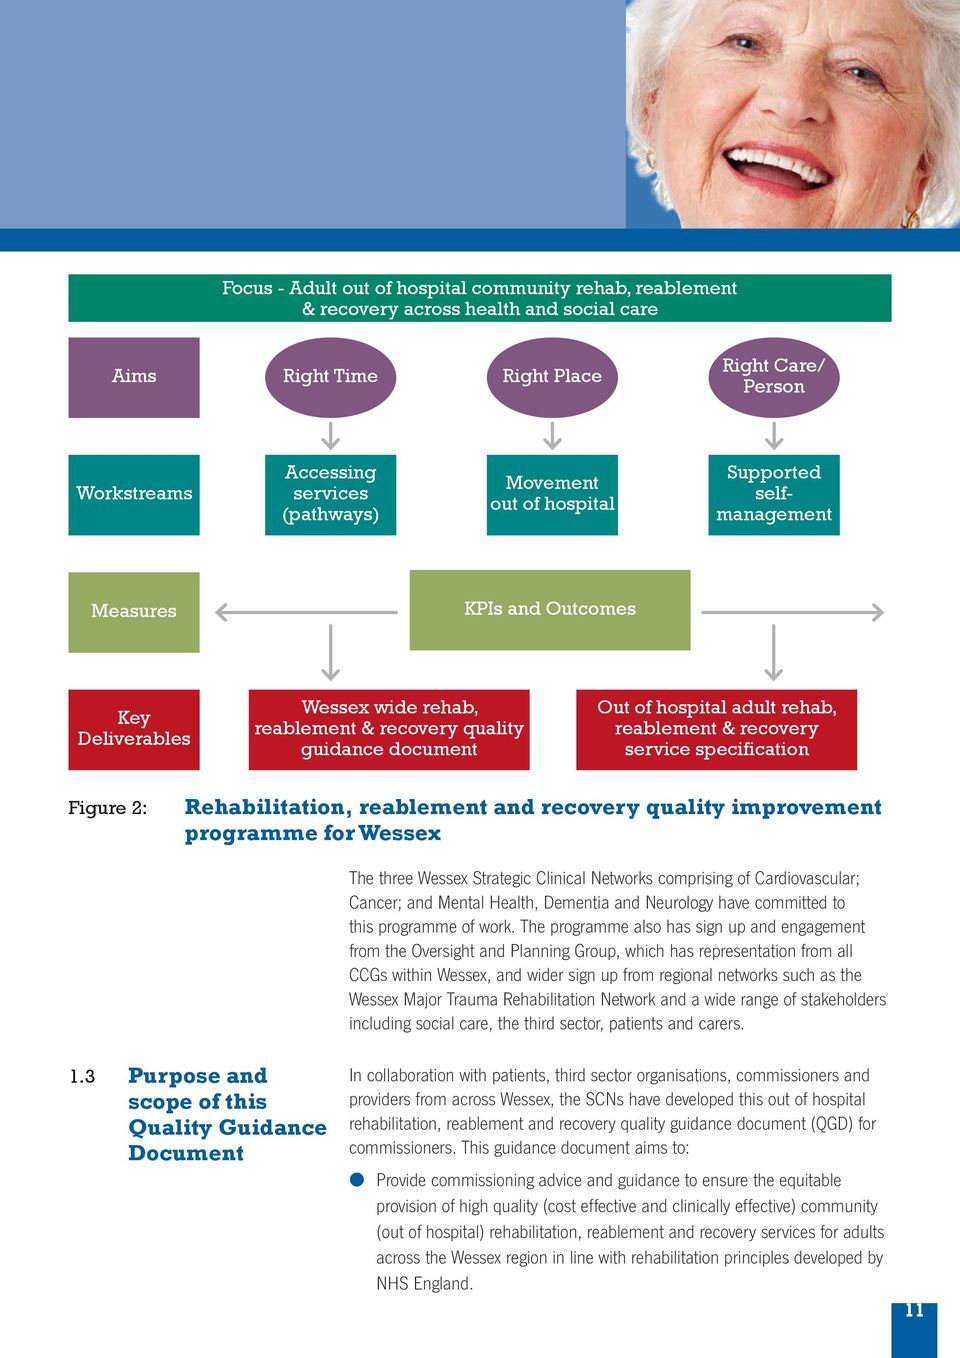 recovery service specification Figure 2: Rehabilitation, reablement and recovery quality improvement programme for Wessex 1.